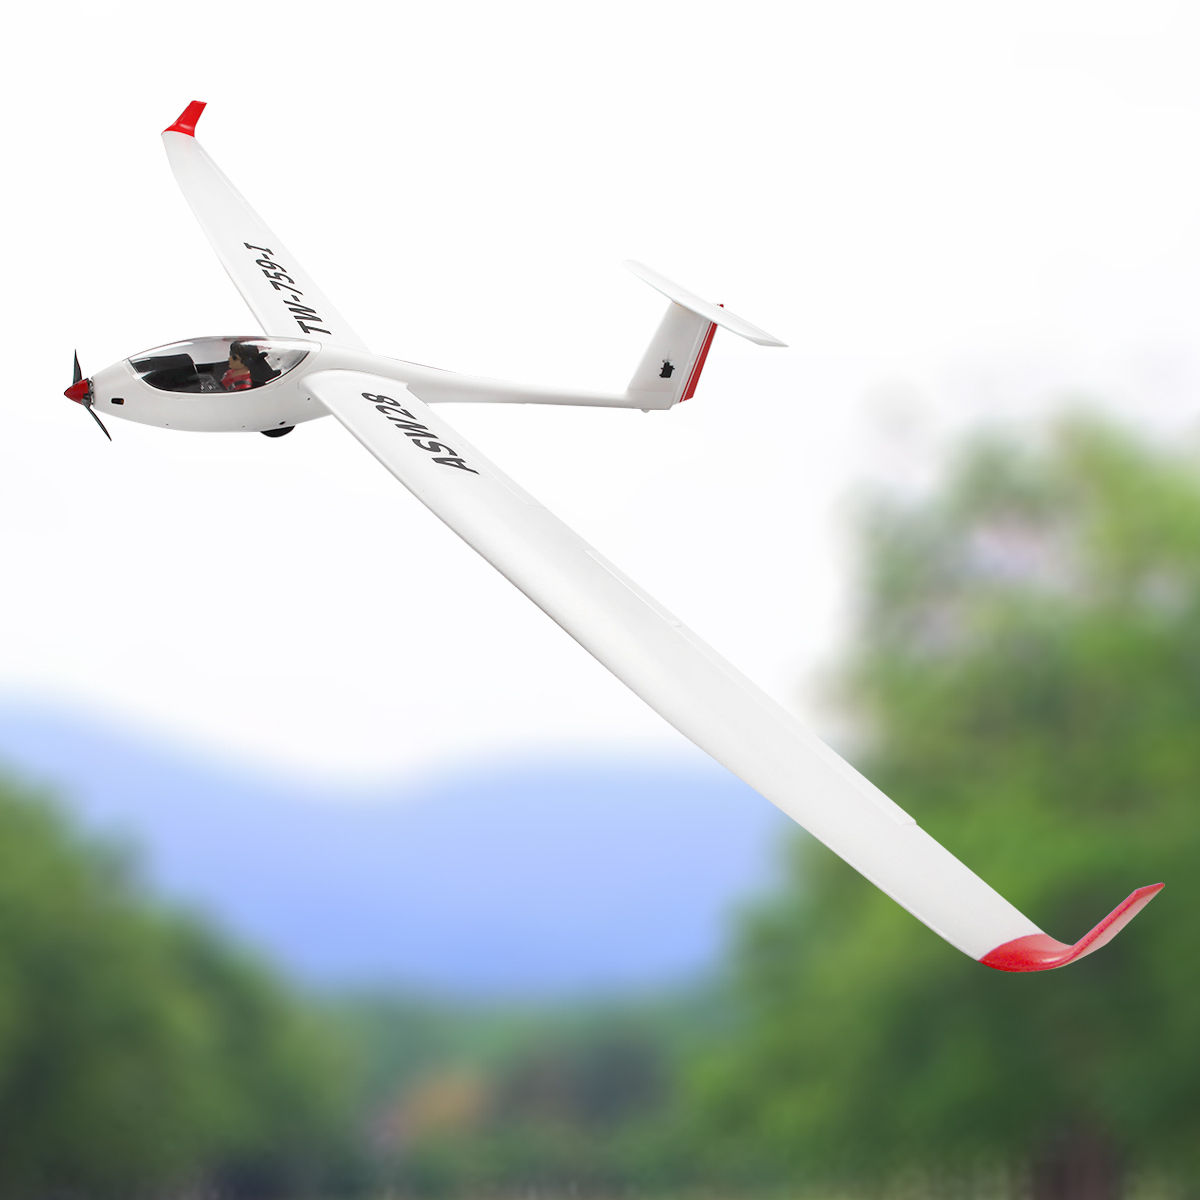 Costway Volantex ASW28 RC Glider Airplane Sailplane PNP Brushless No Radio by Costway